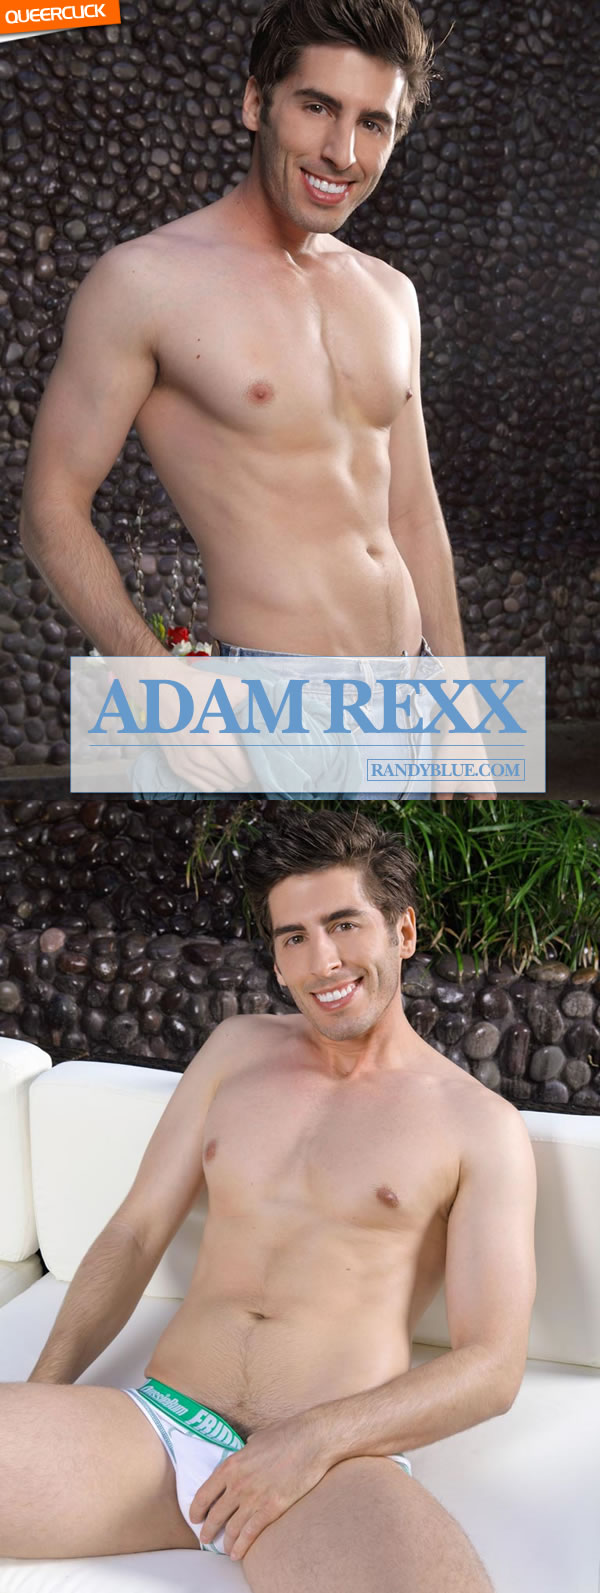 rb adam rexx a iv picture bbs picture of mild genital herpes milton twins free pics torrie ...